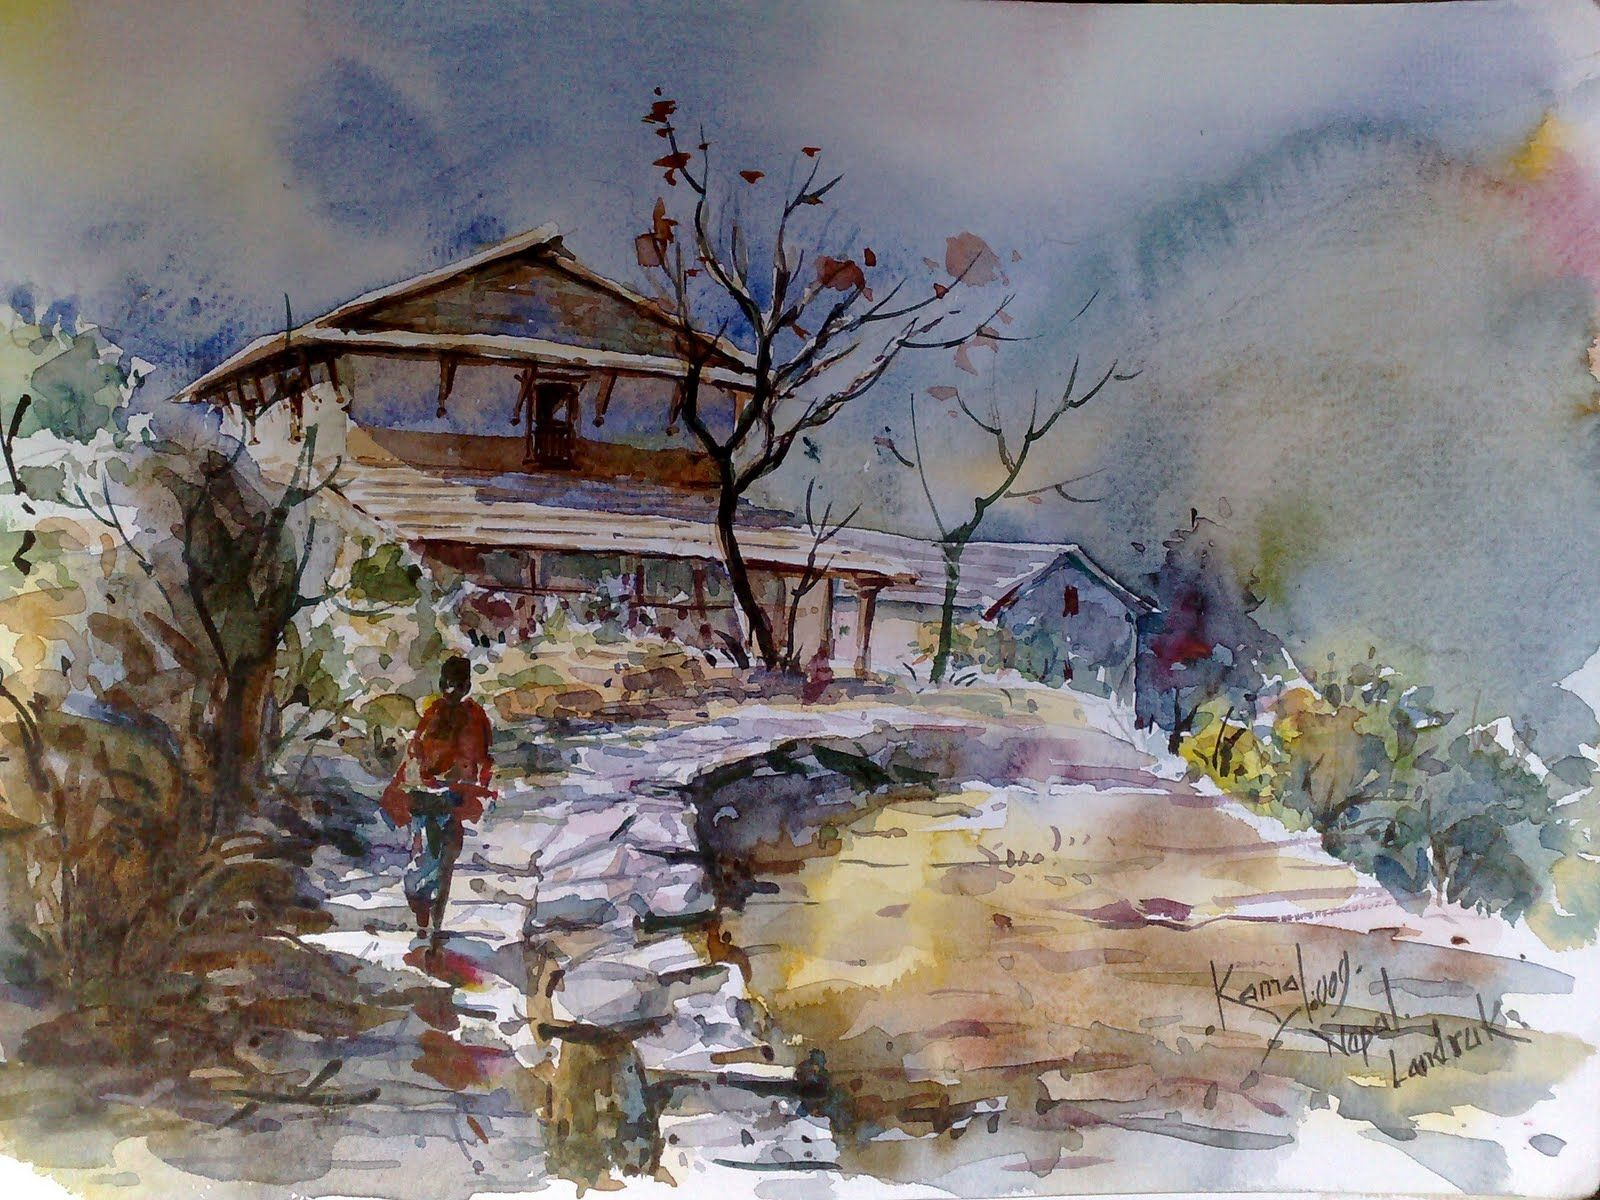 watercolor paintings images - HD1600×1200